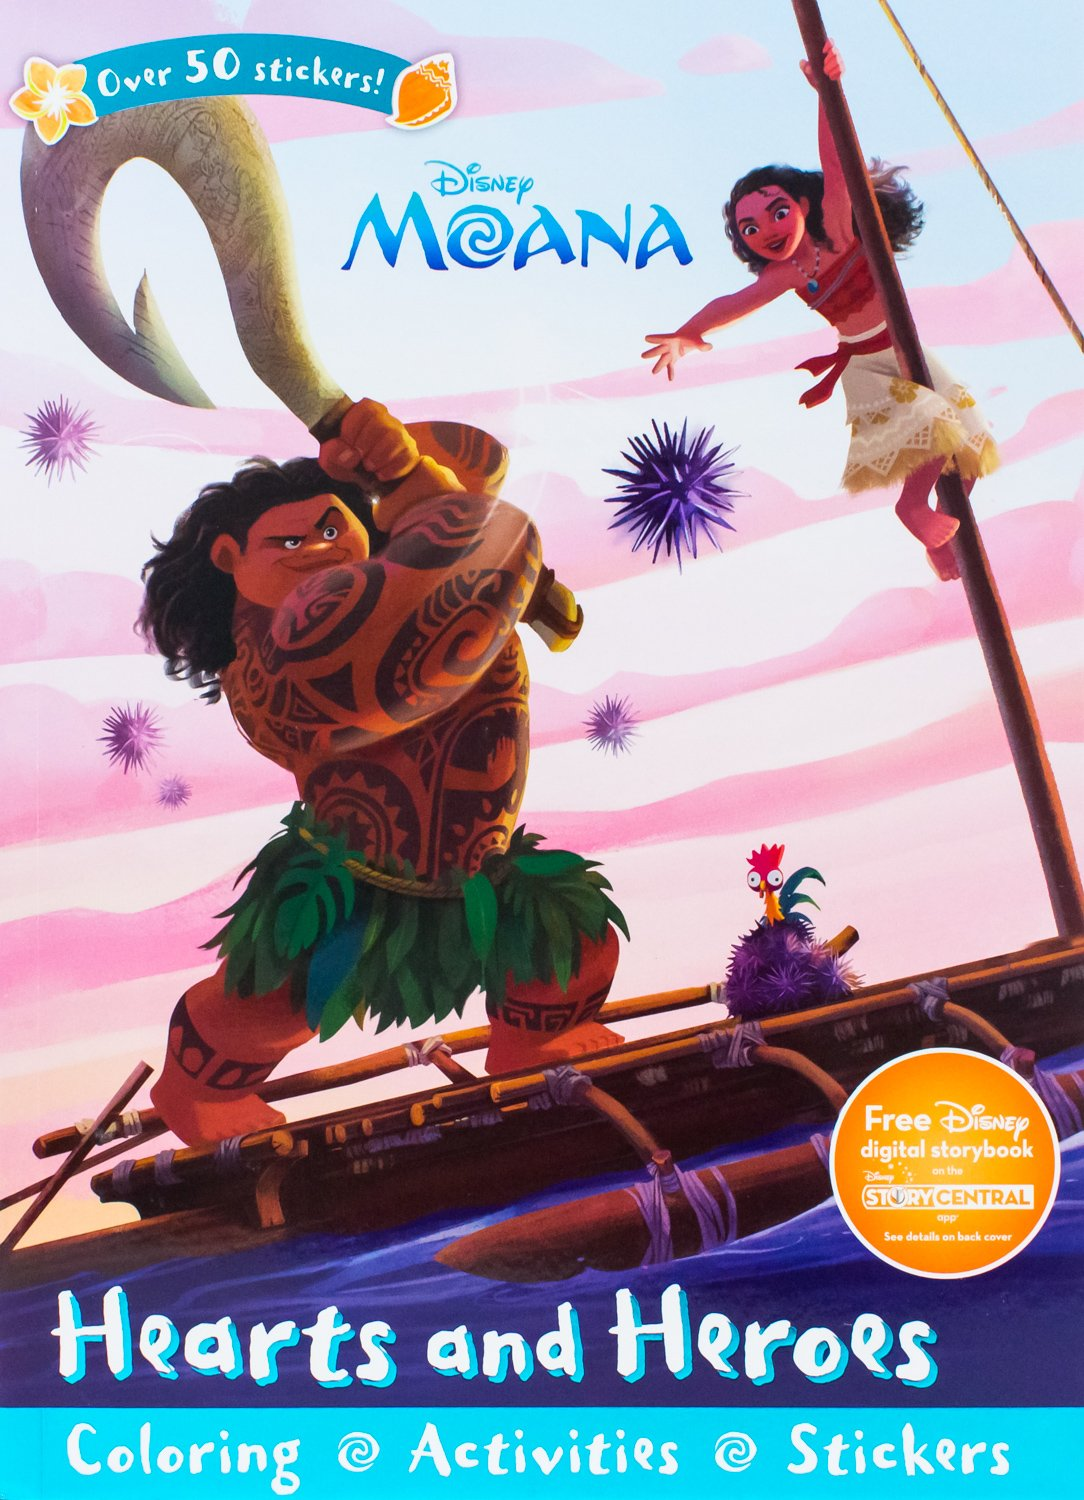 Disney Moana Hearts And Heroes Sticker Scenes Coloring Book Parragon Books Ltd 9781474852678 Amazon